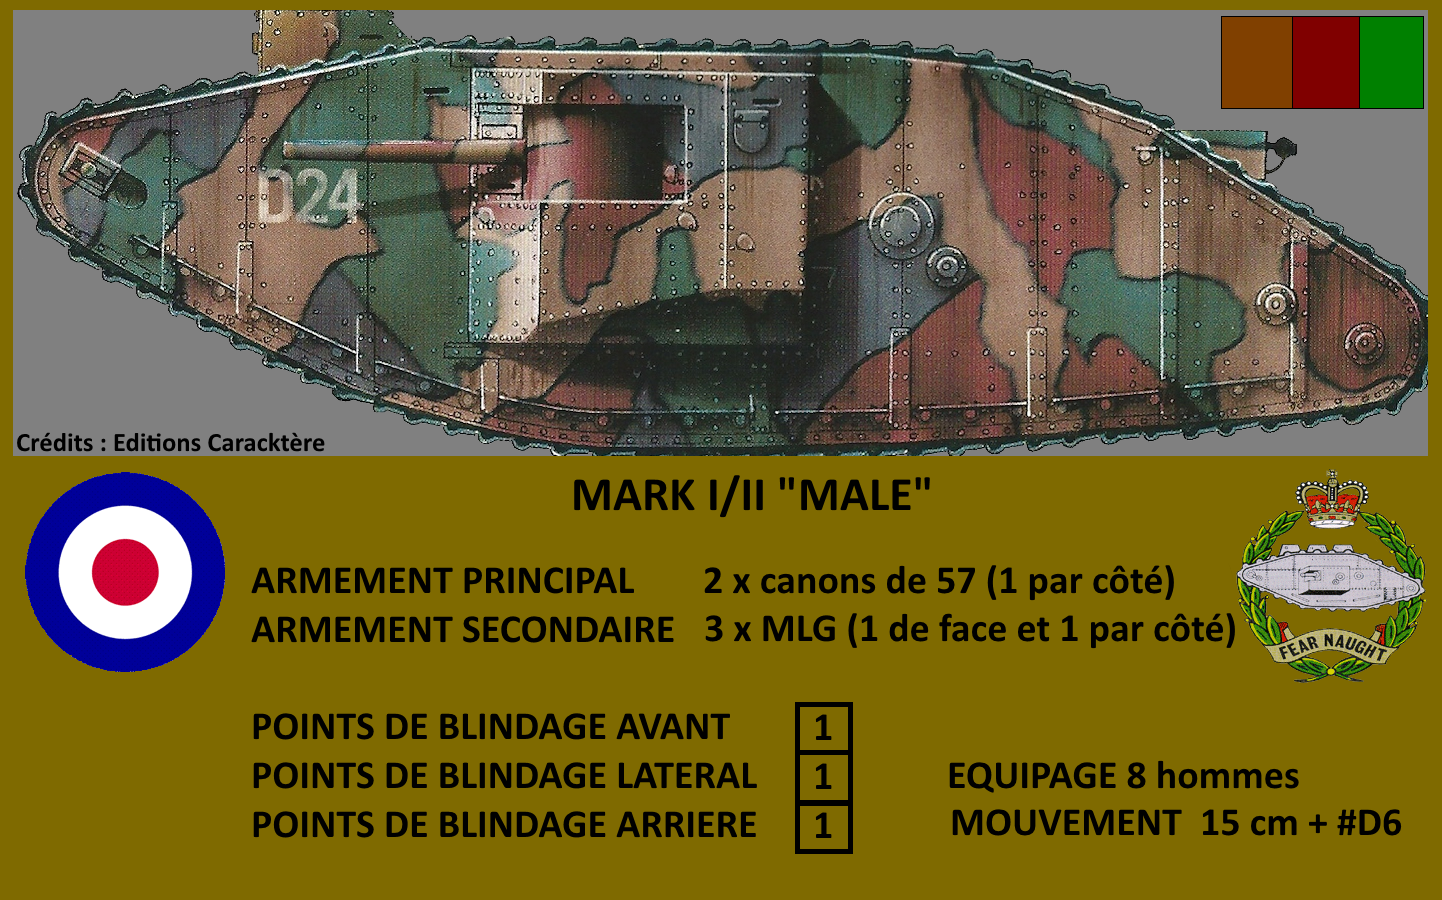 MARK II MALE ARRAS 1917